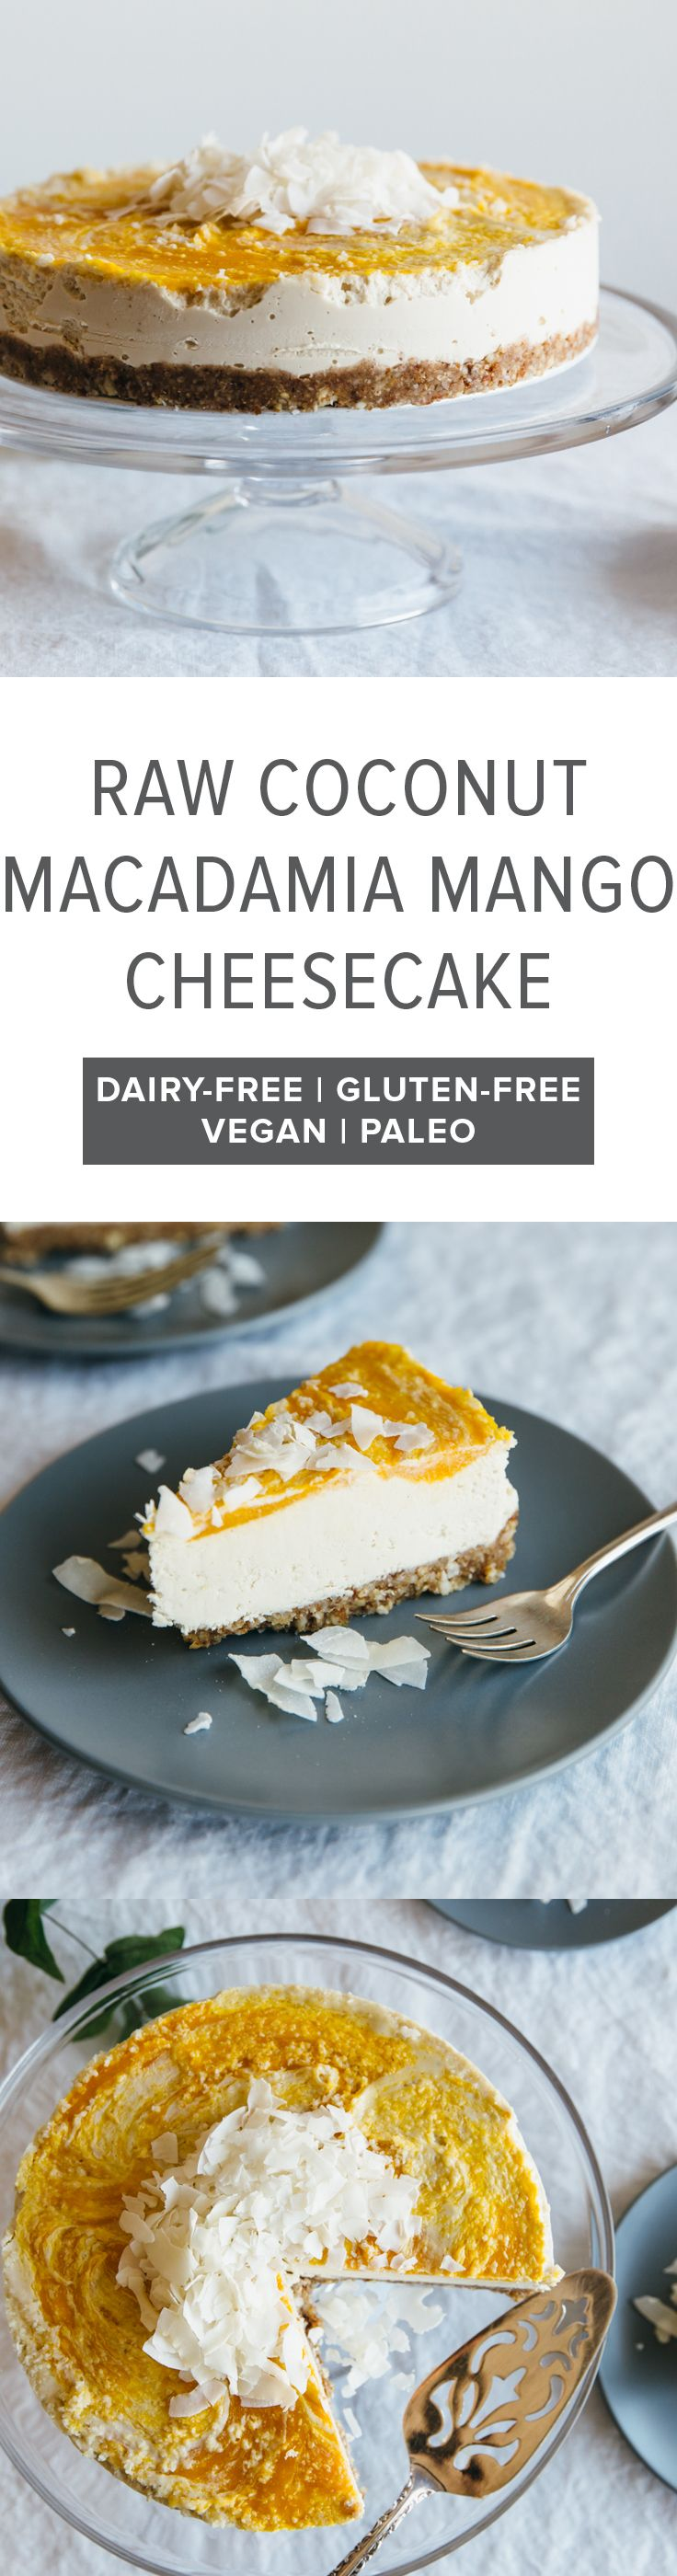 (gluten-free, vegan, paleo) Raw coconut, macadamia and mango cheesecake. A fruity and tropical dairy-free cheesecake.